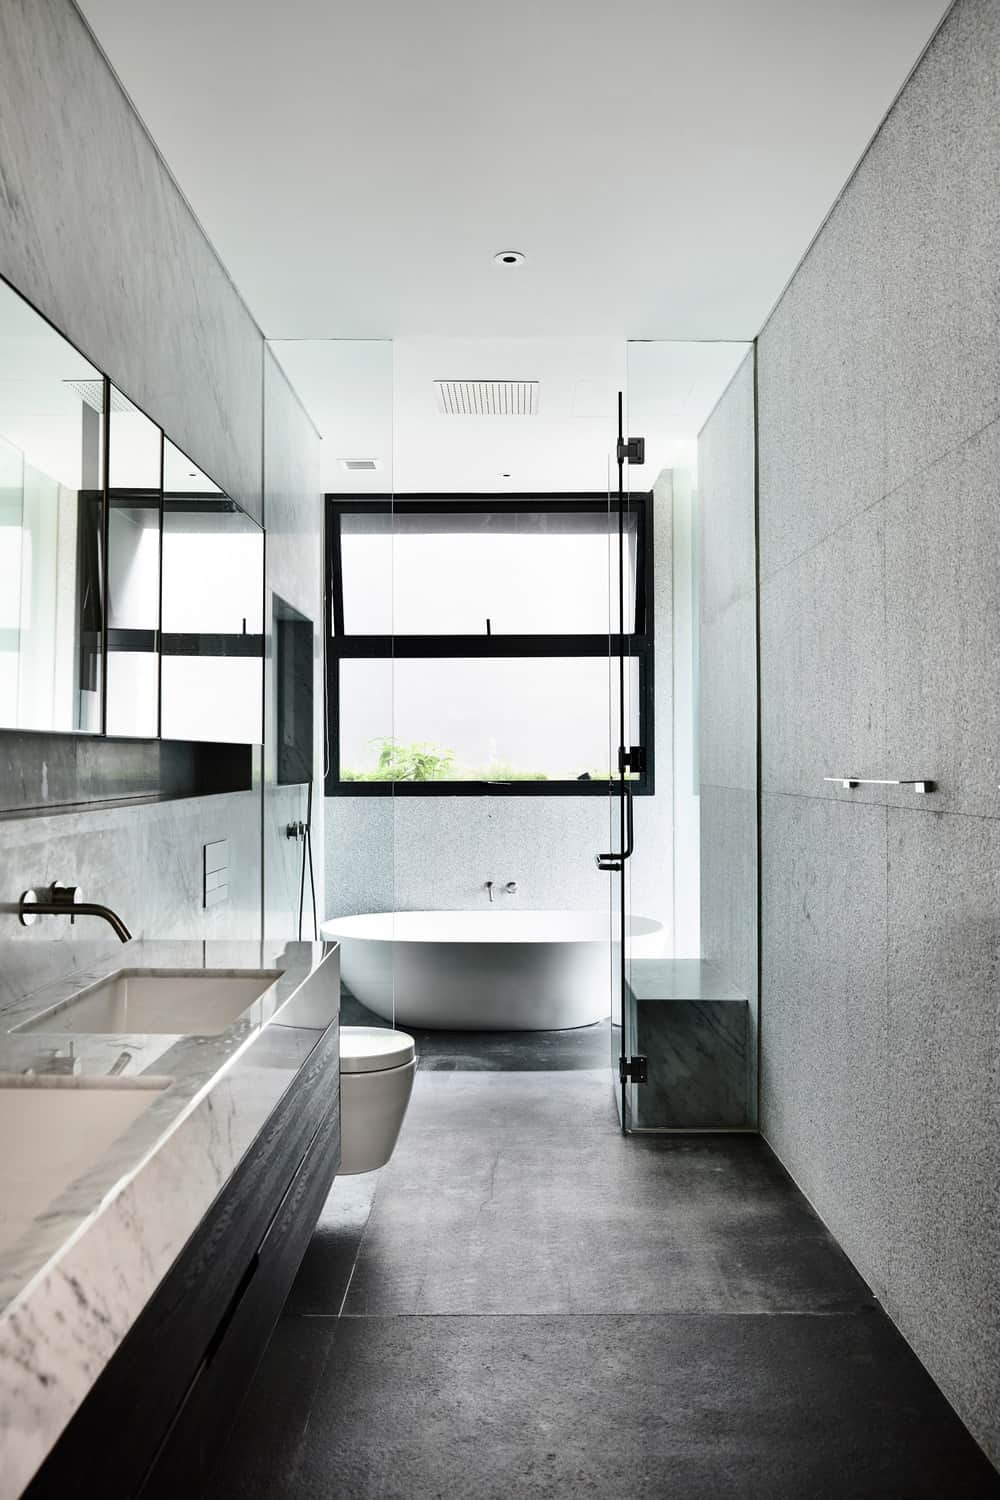 This is a bright and white bathroom with a glass-enclosed wet area at the far edge with a freestanding bathtub.